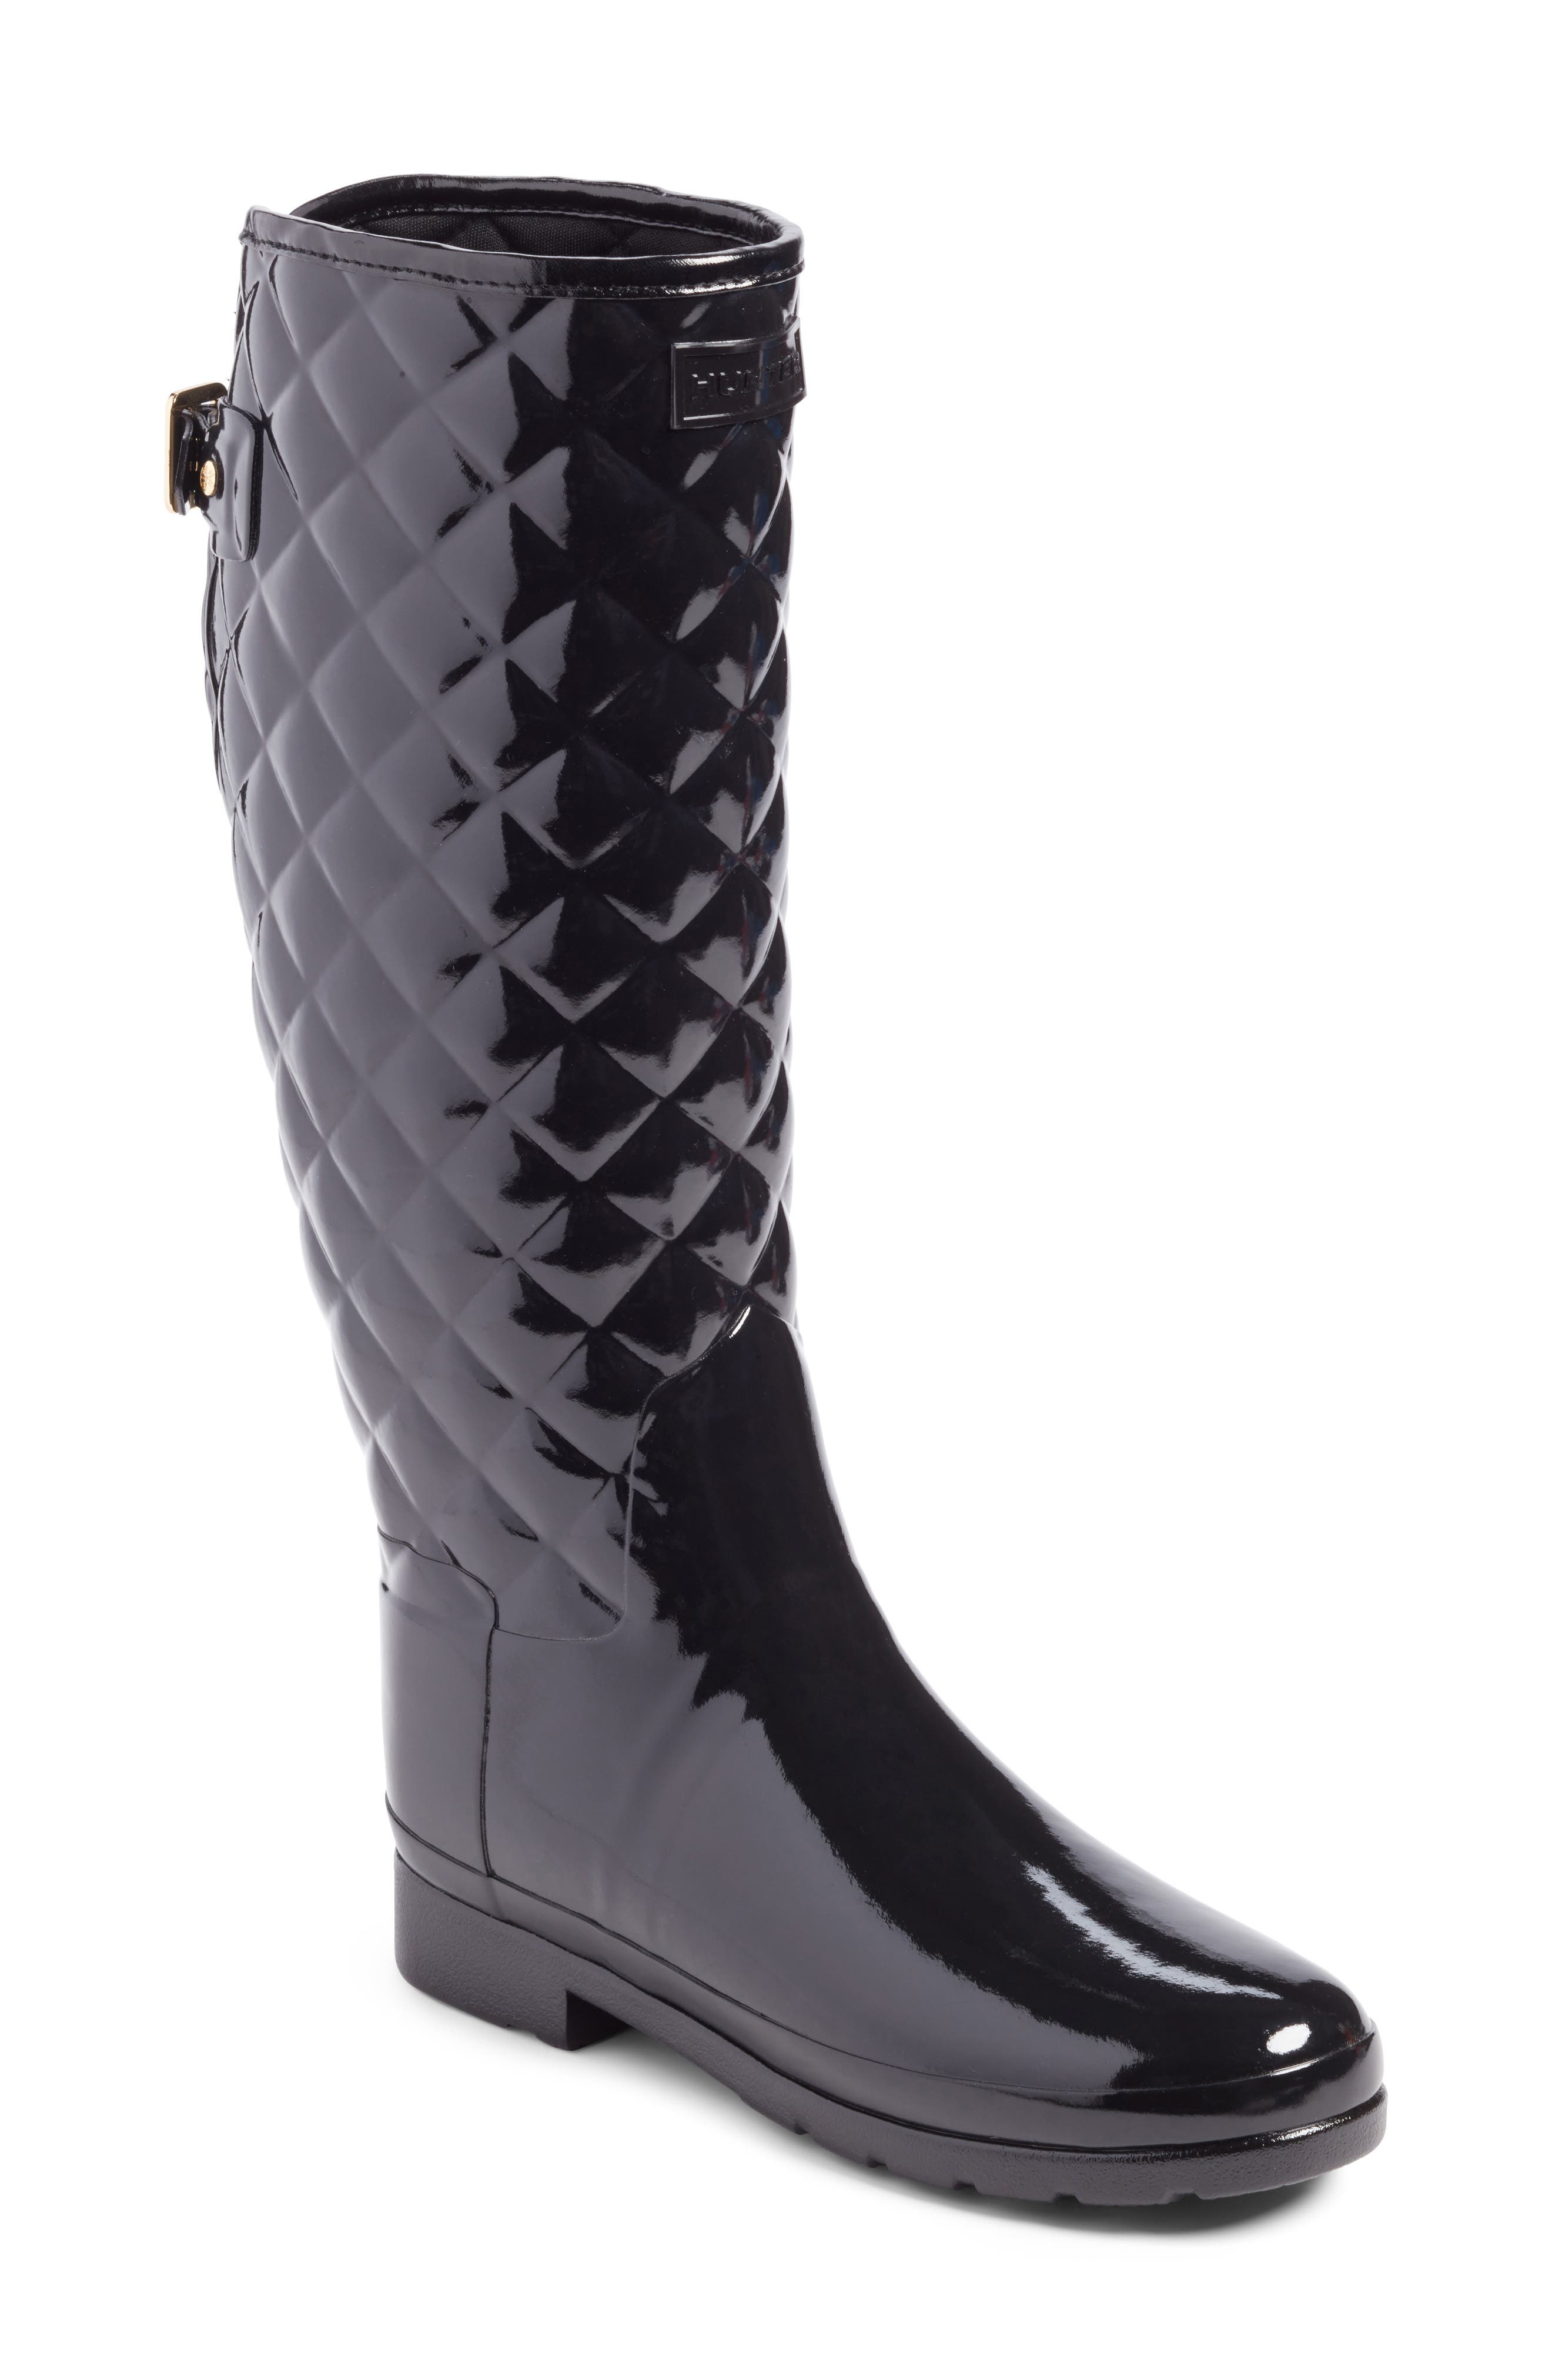 HUNTER, Original Refined High Gloss Quilted Waterproof Rain Boot, Main thumbnail 1, color, BLACK